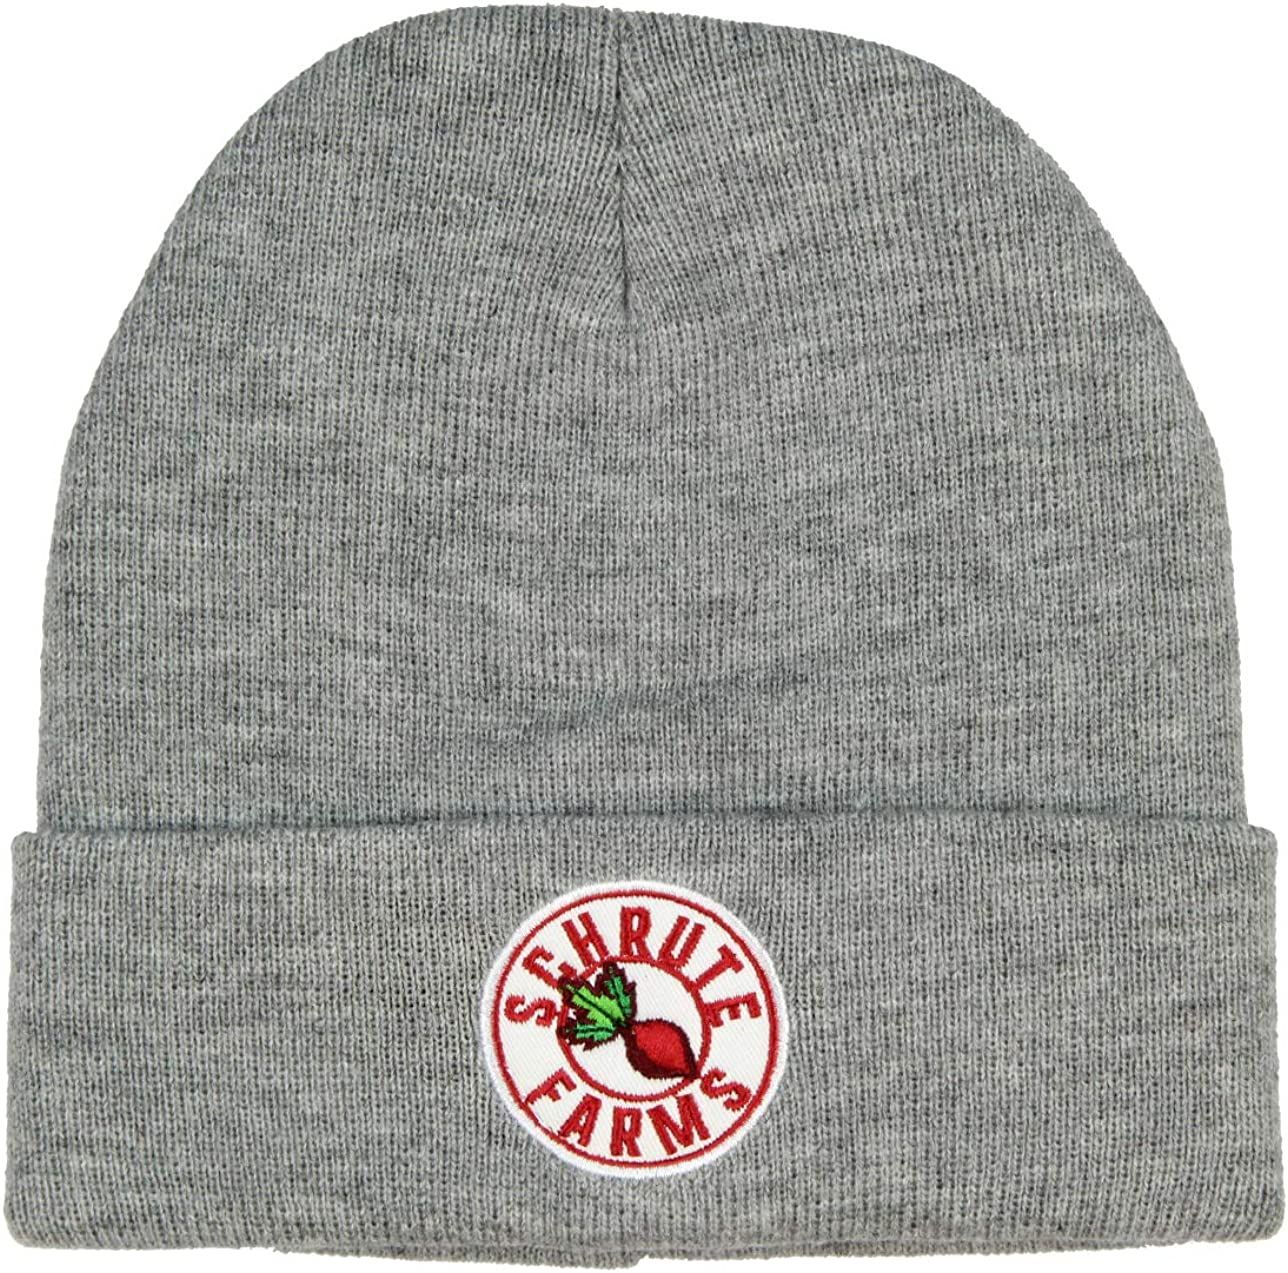 CultureFly The Office Schrute Farms Beets Beanie (Grey)